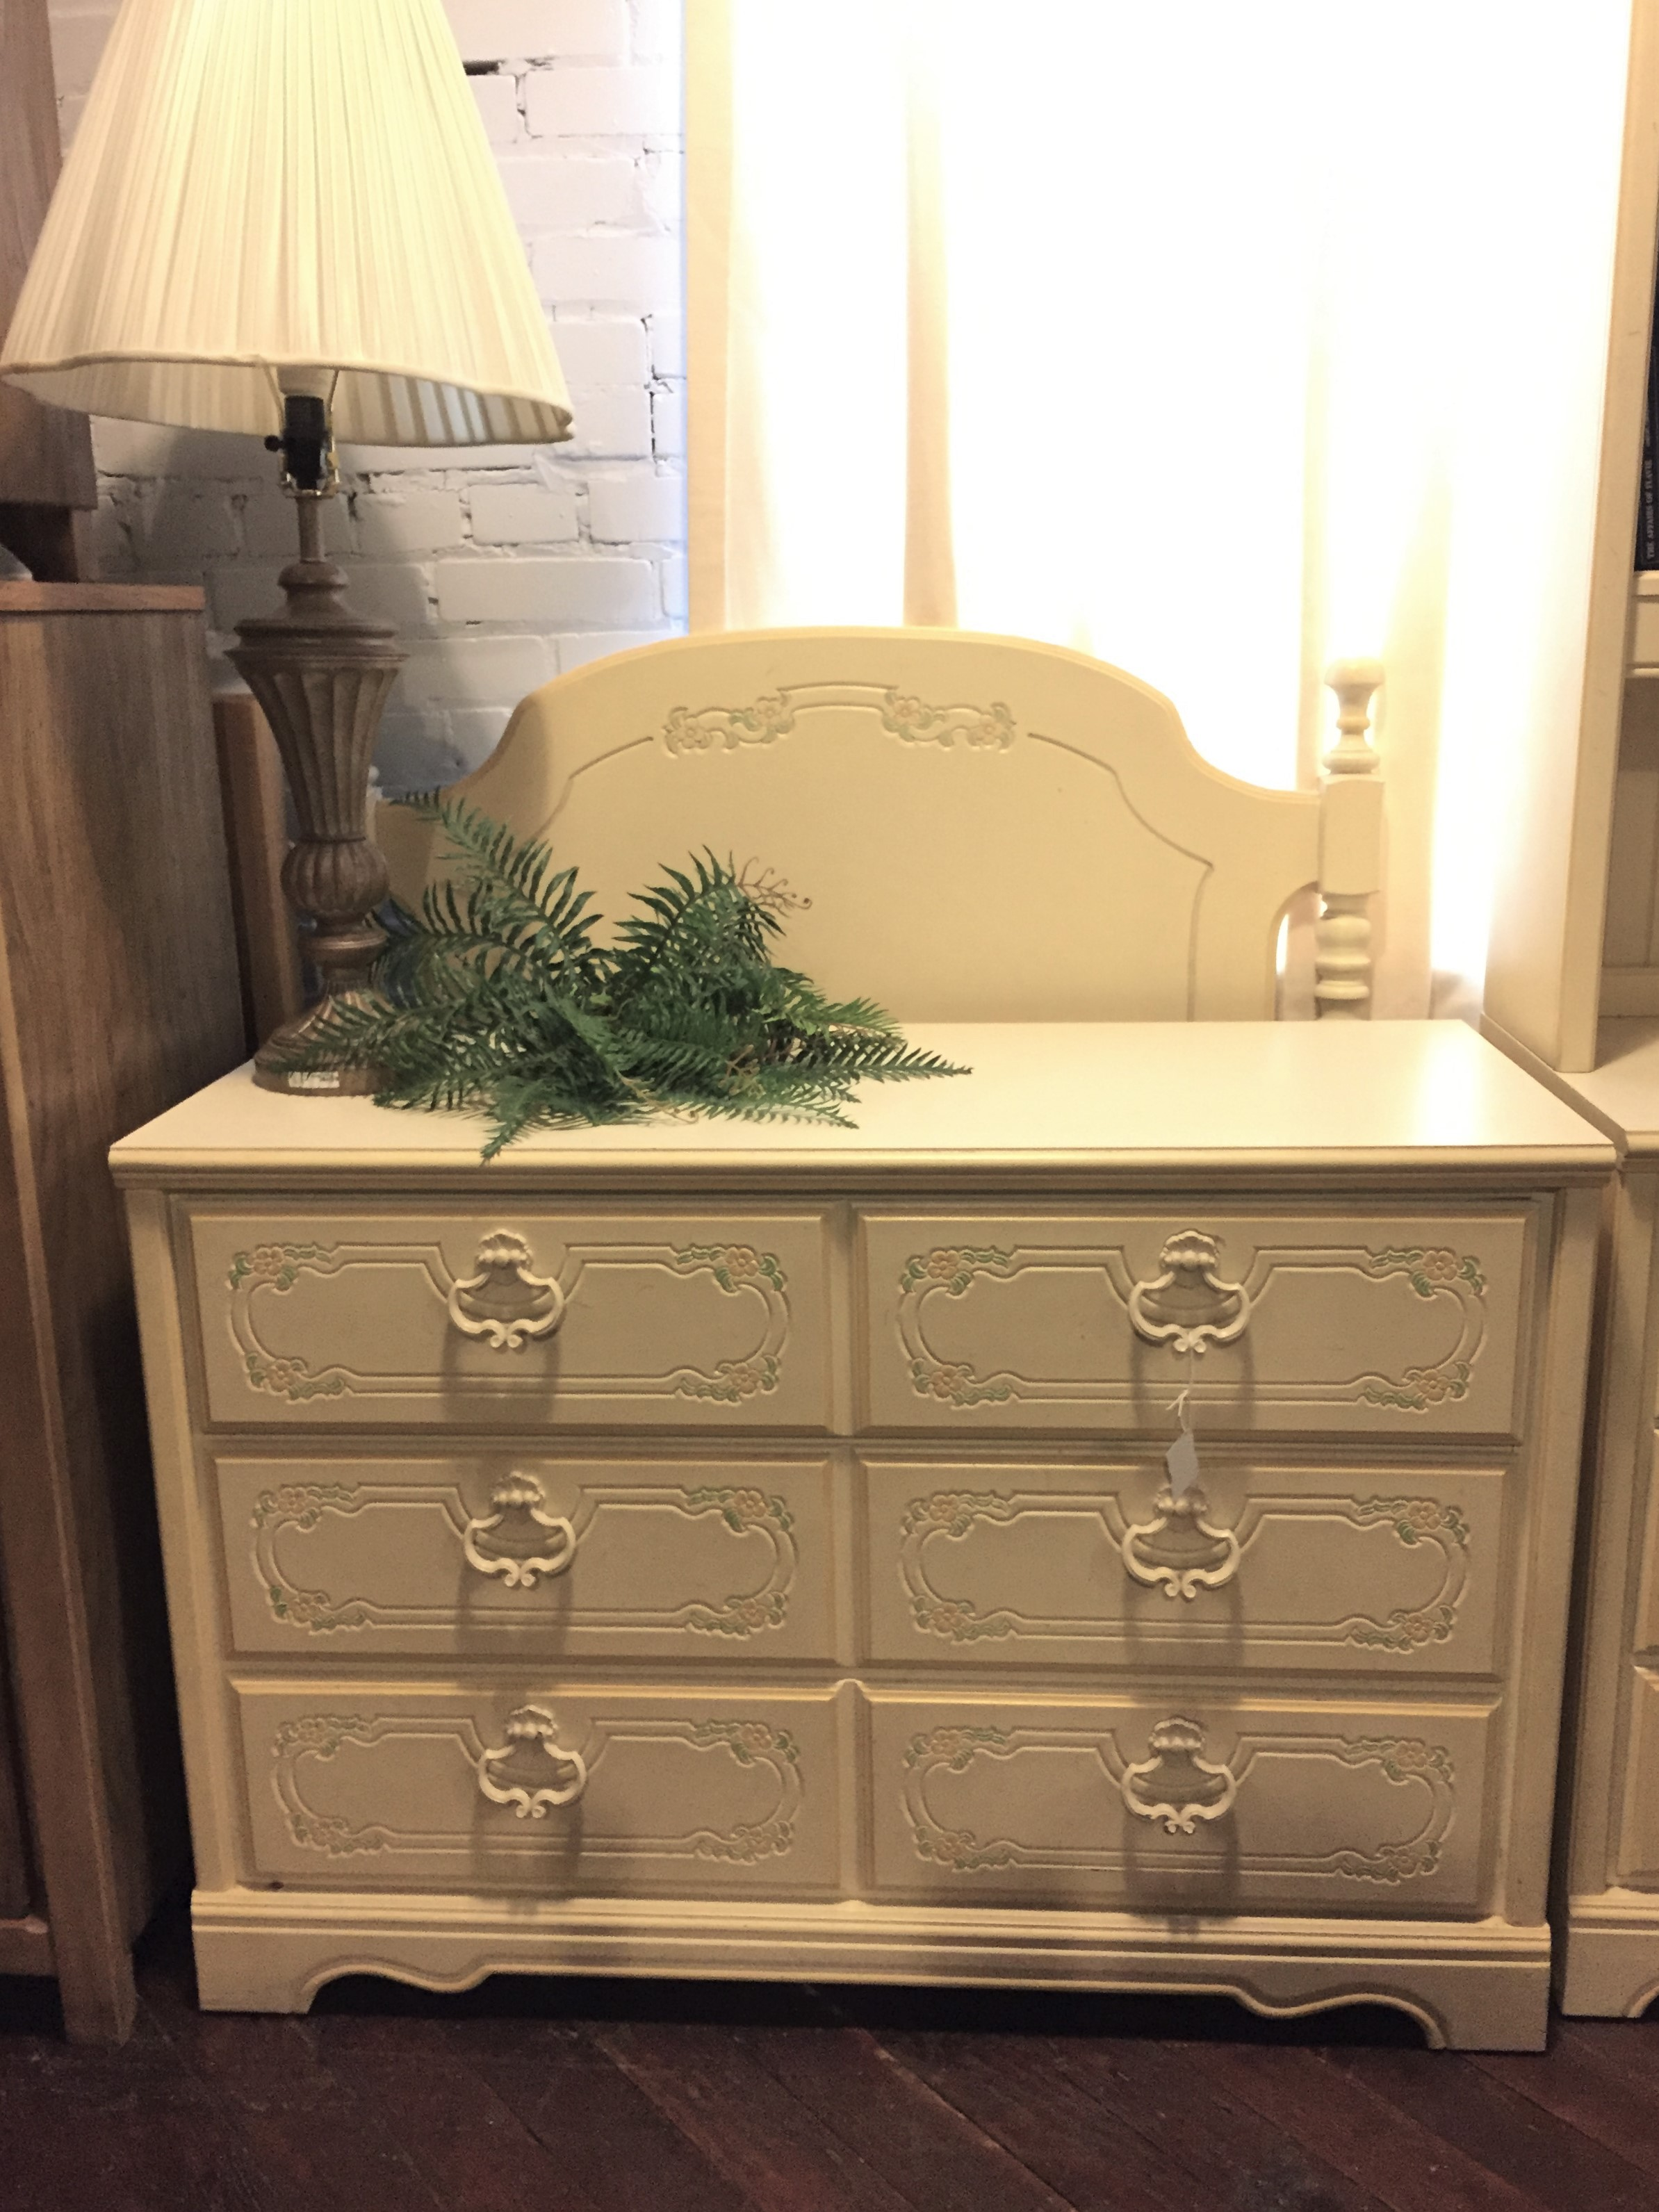 CREAM FLOWERED LOW DRESSER